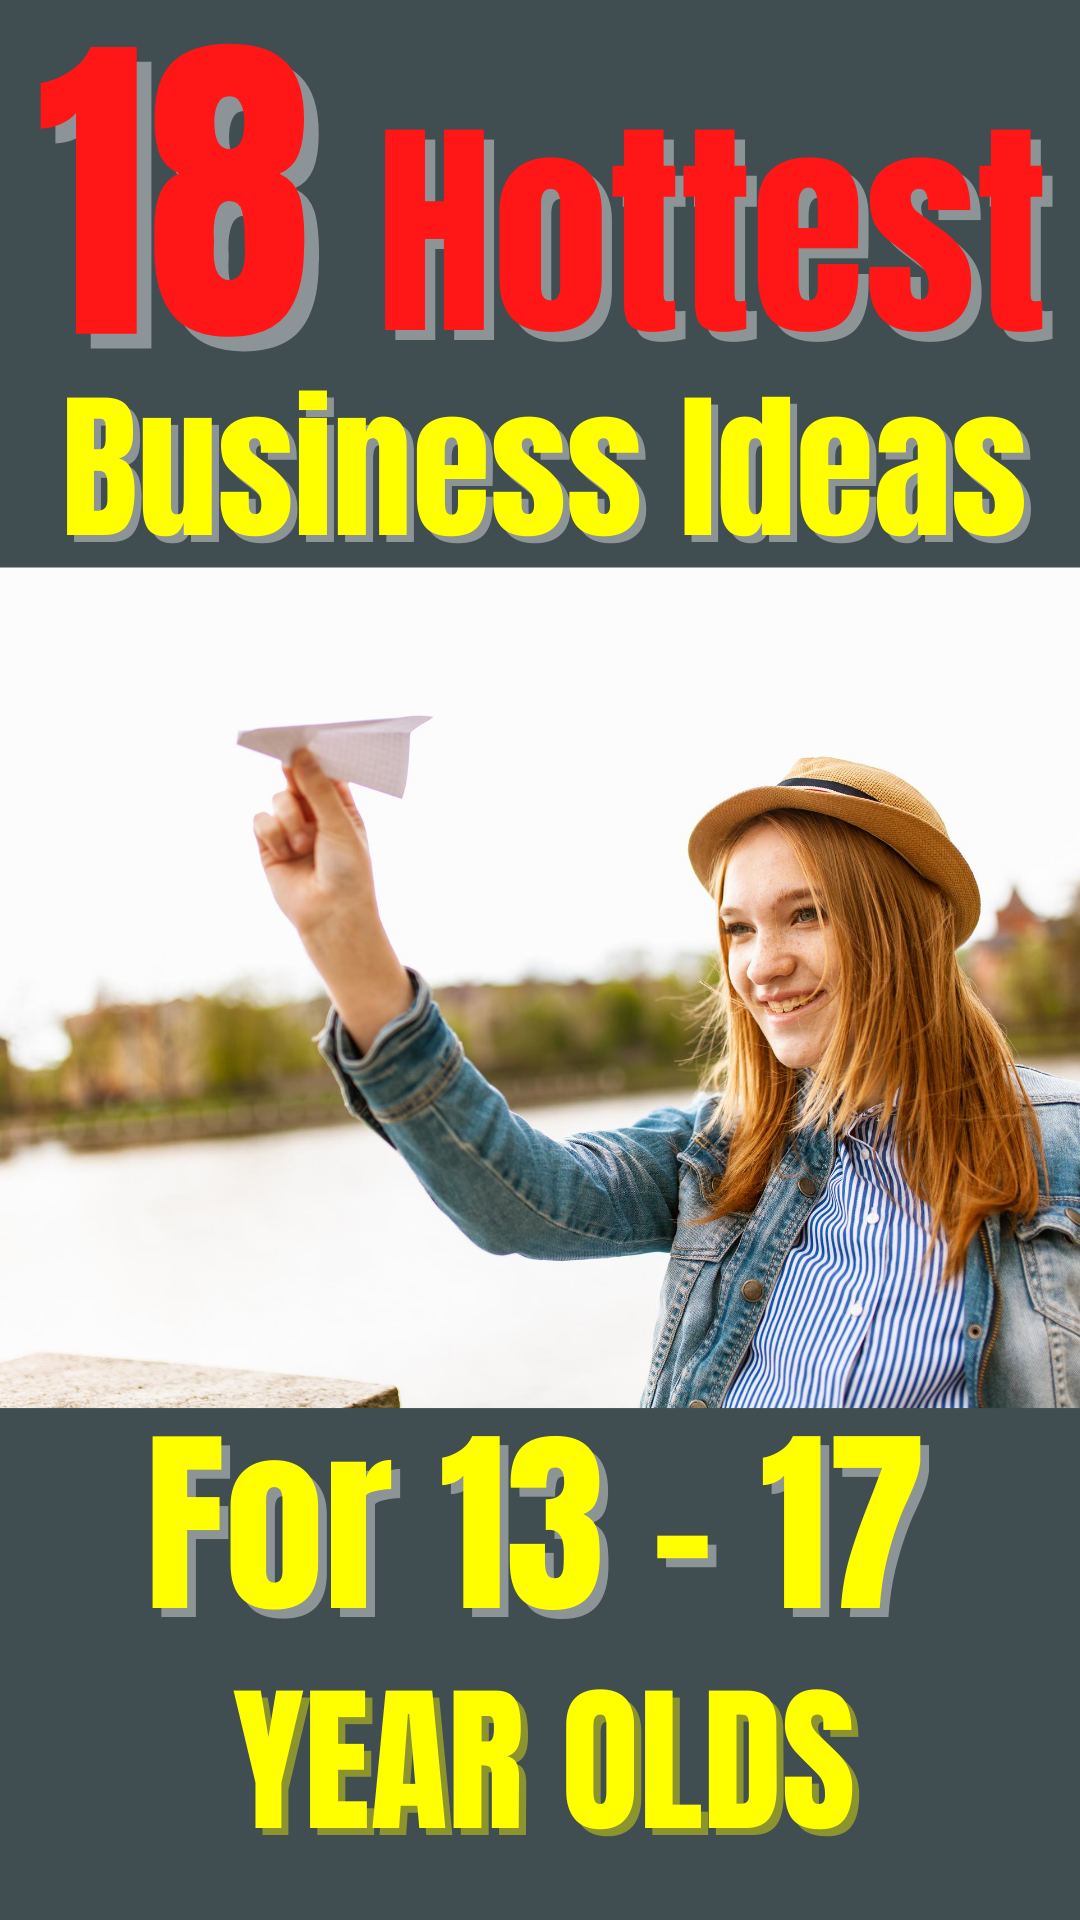 Business Ideas For 13 14 15 16 17 Year Olds Online Business Ideas High Income Skills Jobs For Teens Easy Business Ideas Online Business